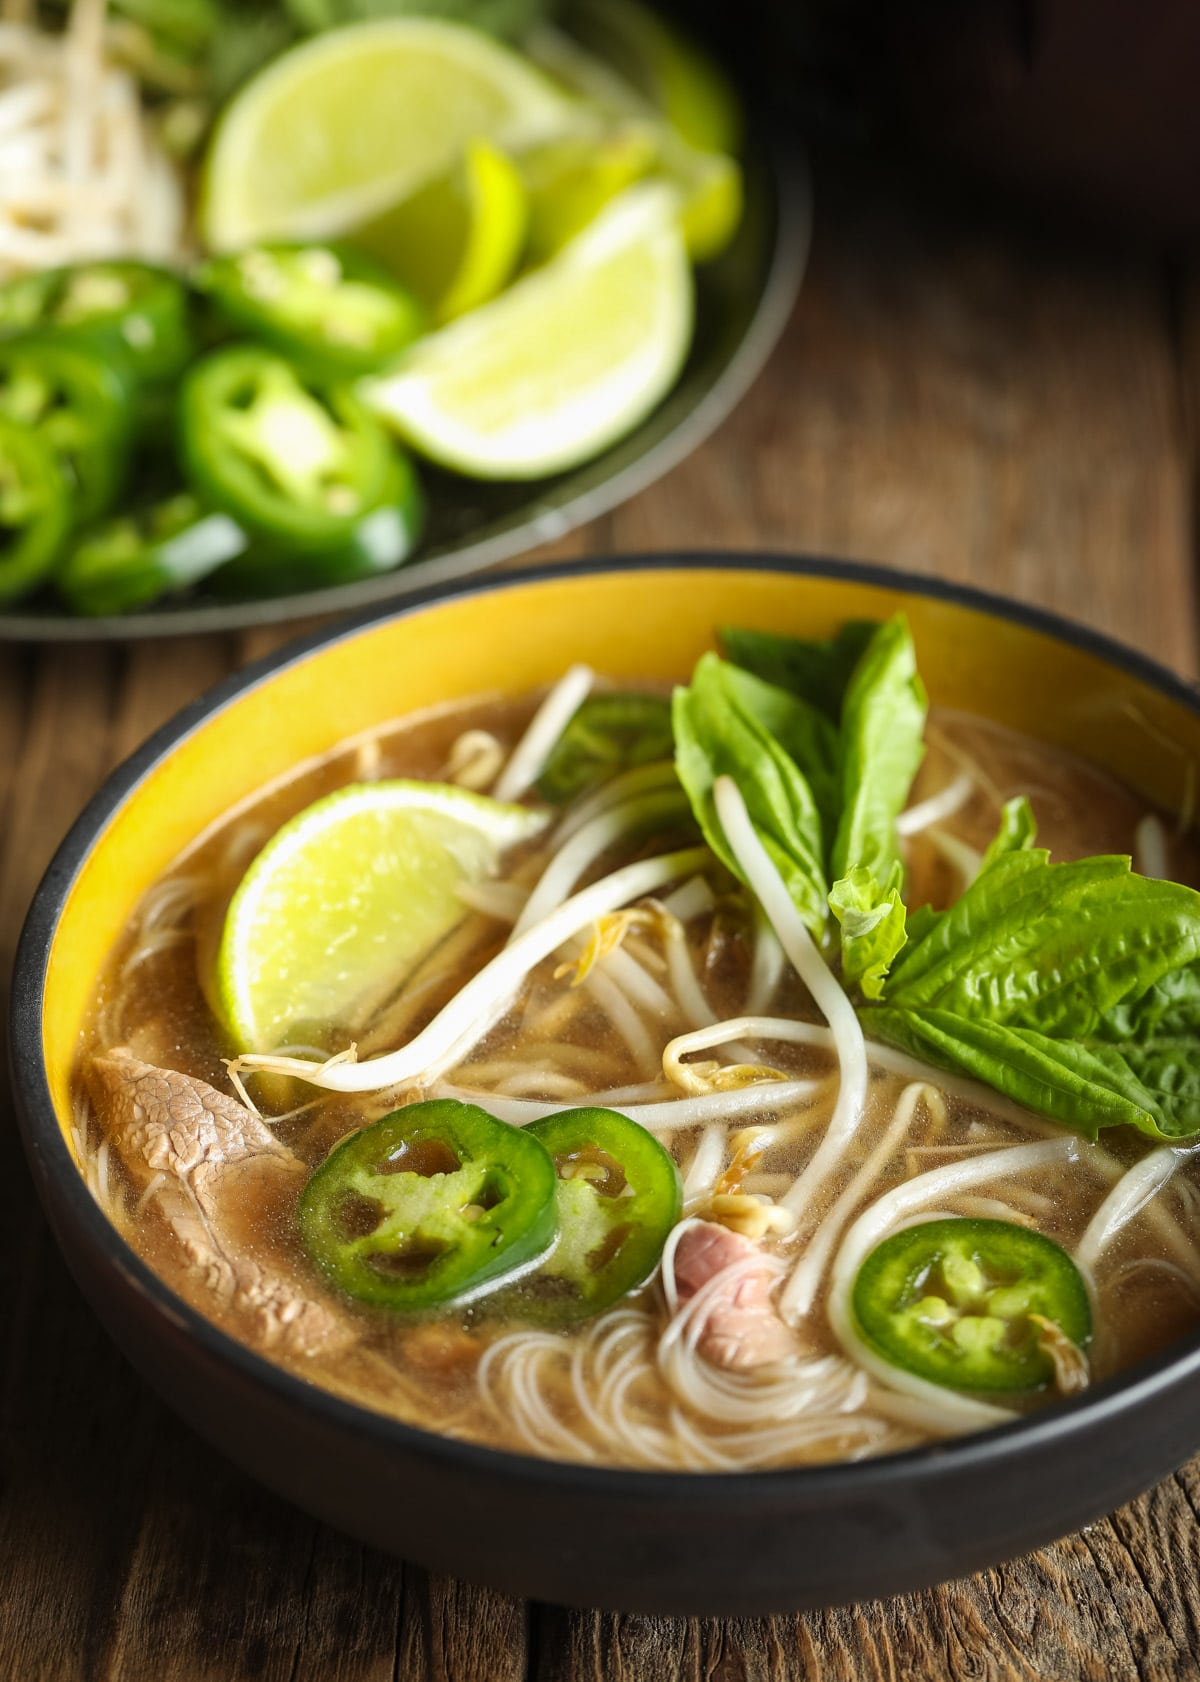 Best Low Carb Vietnamese Pho Recipe #ASpicyPerspective #whole30 #paleo #lowcarb #keto #Soup